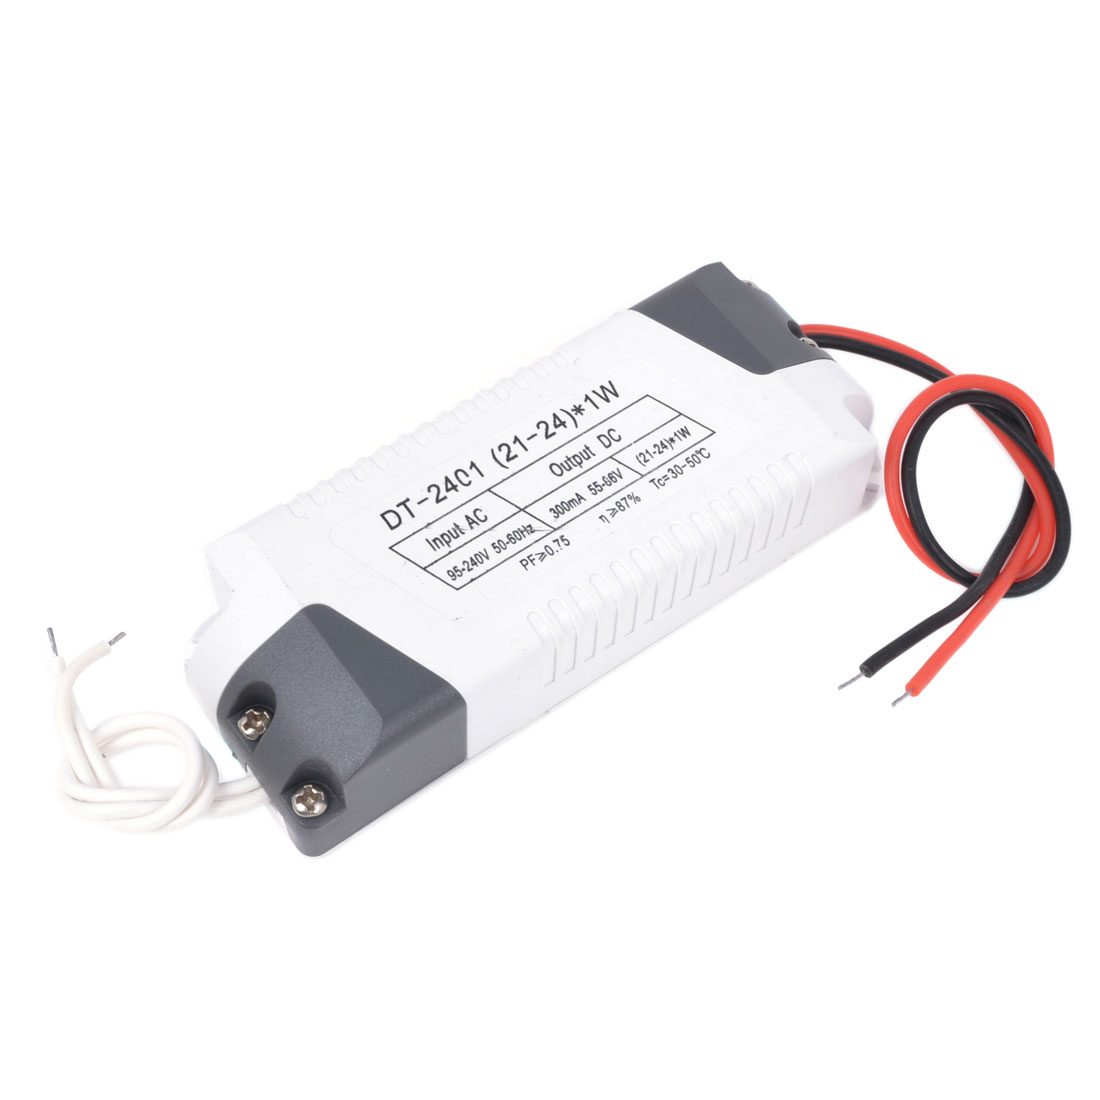 DC 55-66V (21-24)x1W LED Driver Circuit Transformer Power Supply